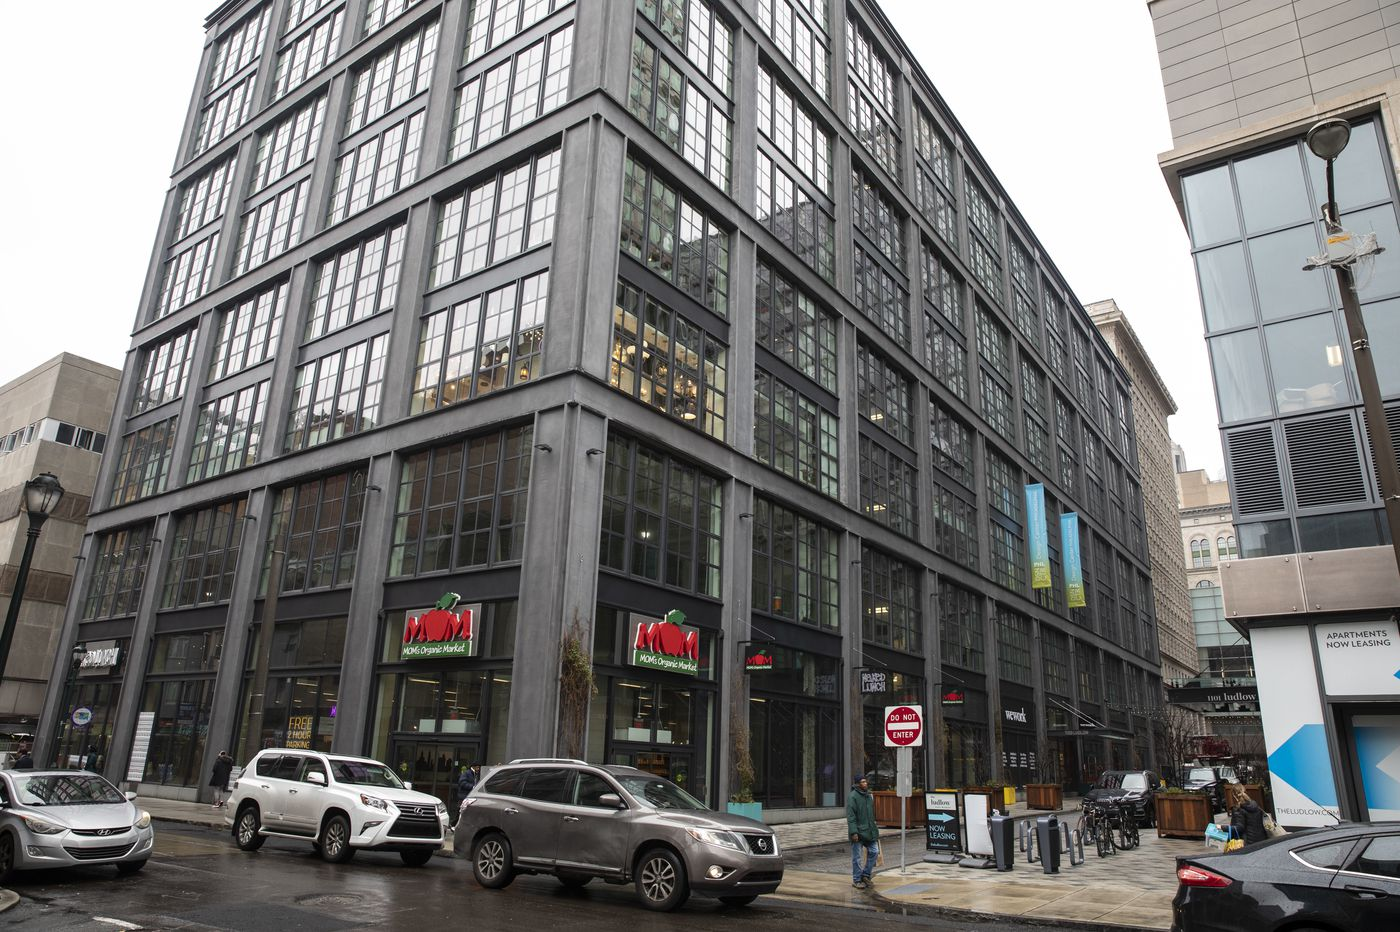 Merck to open outpost at Center City WeWork, as big companies see coworking as a passage into Philly